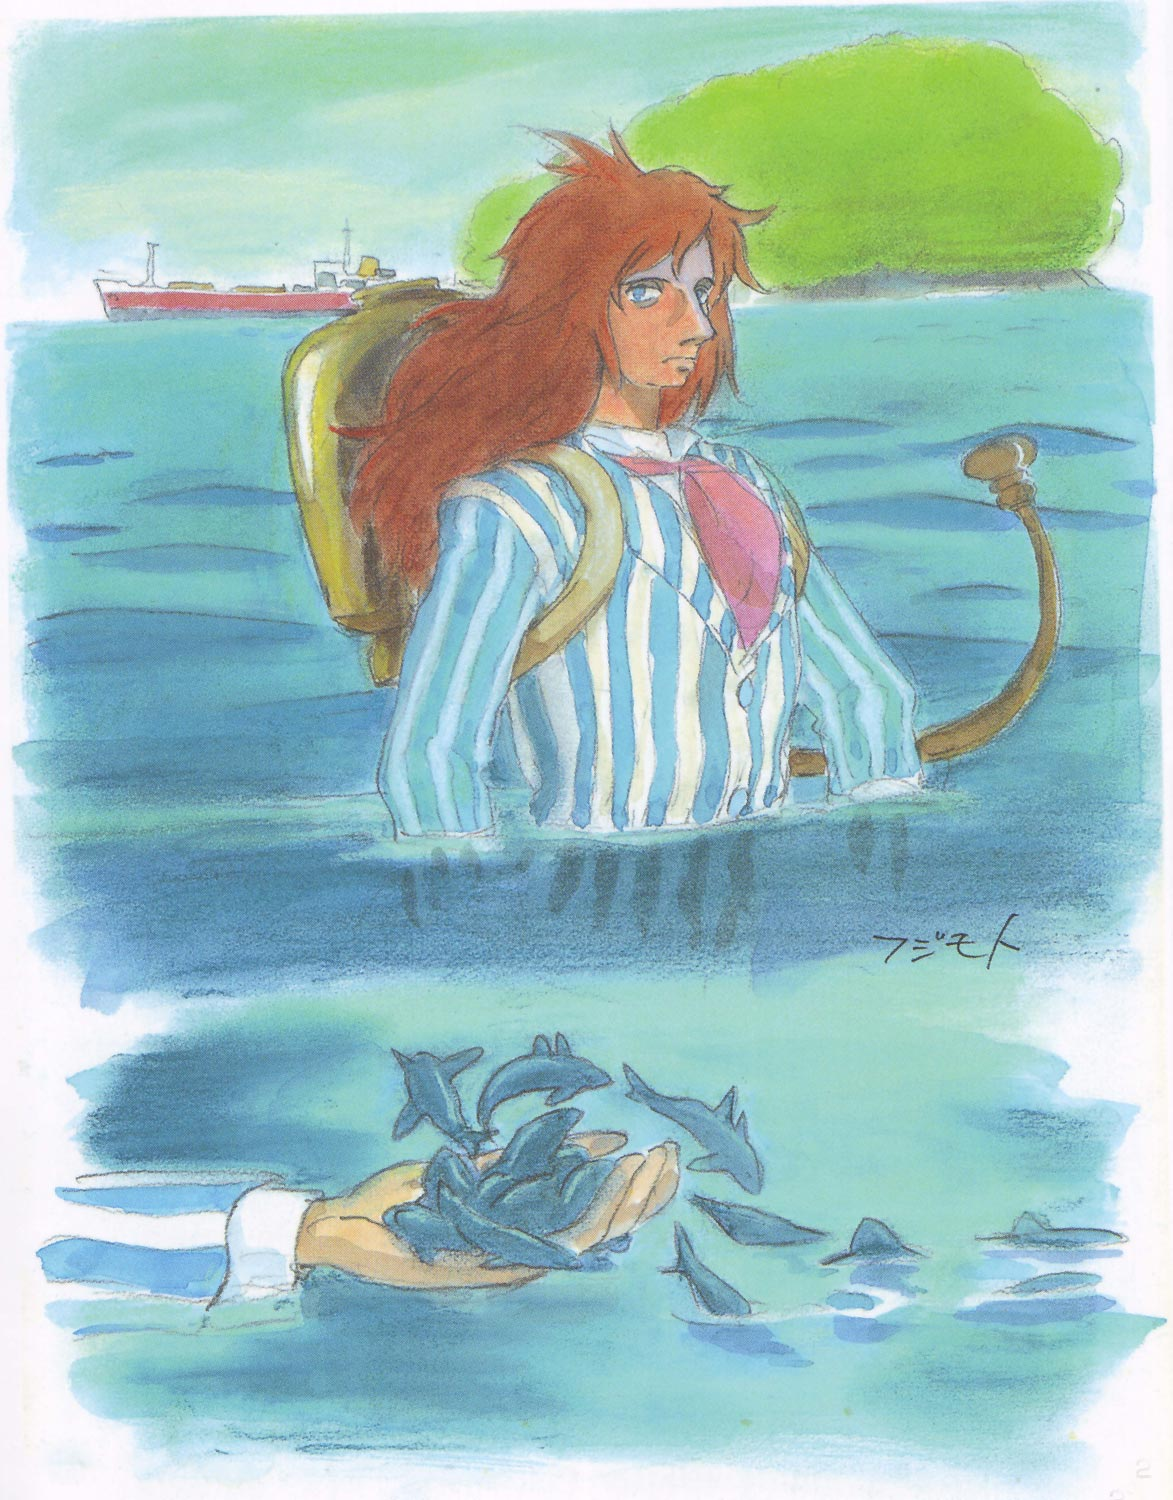 ponyo_on_the_cliff_by_the_sea_artwork_character__31.jpg